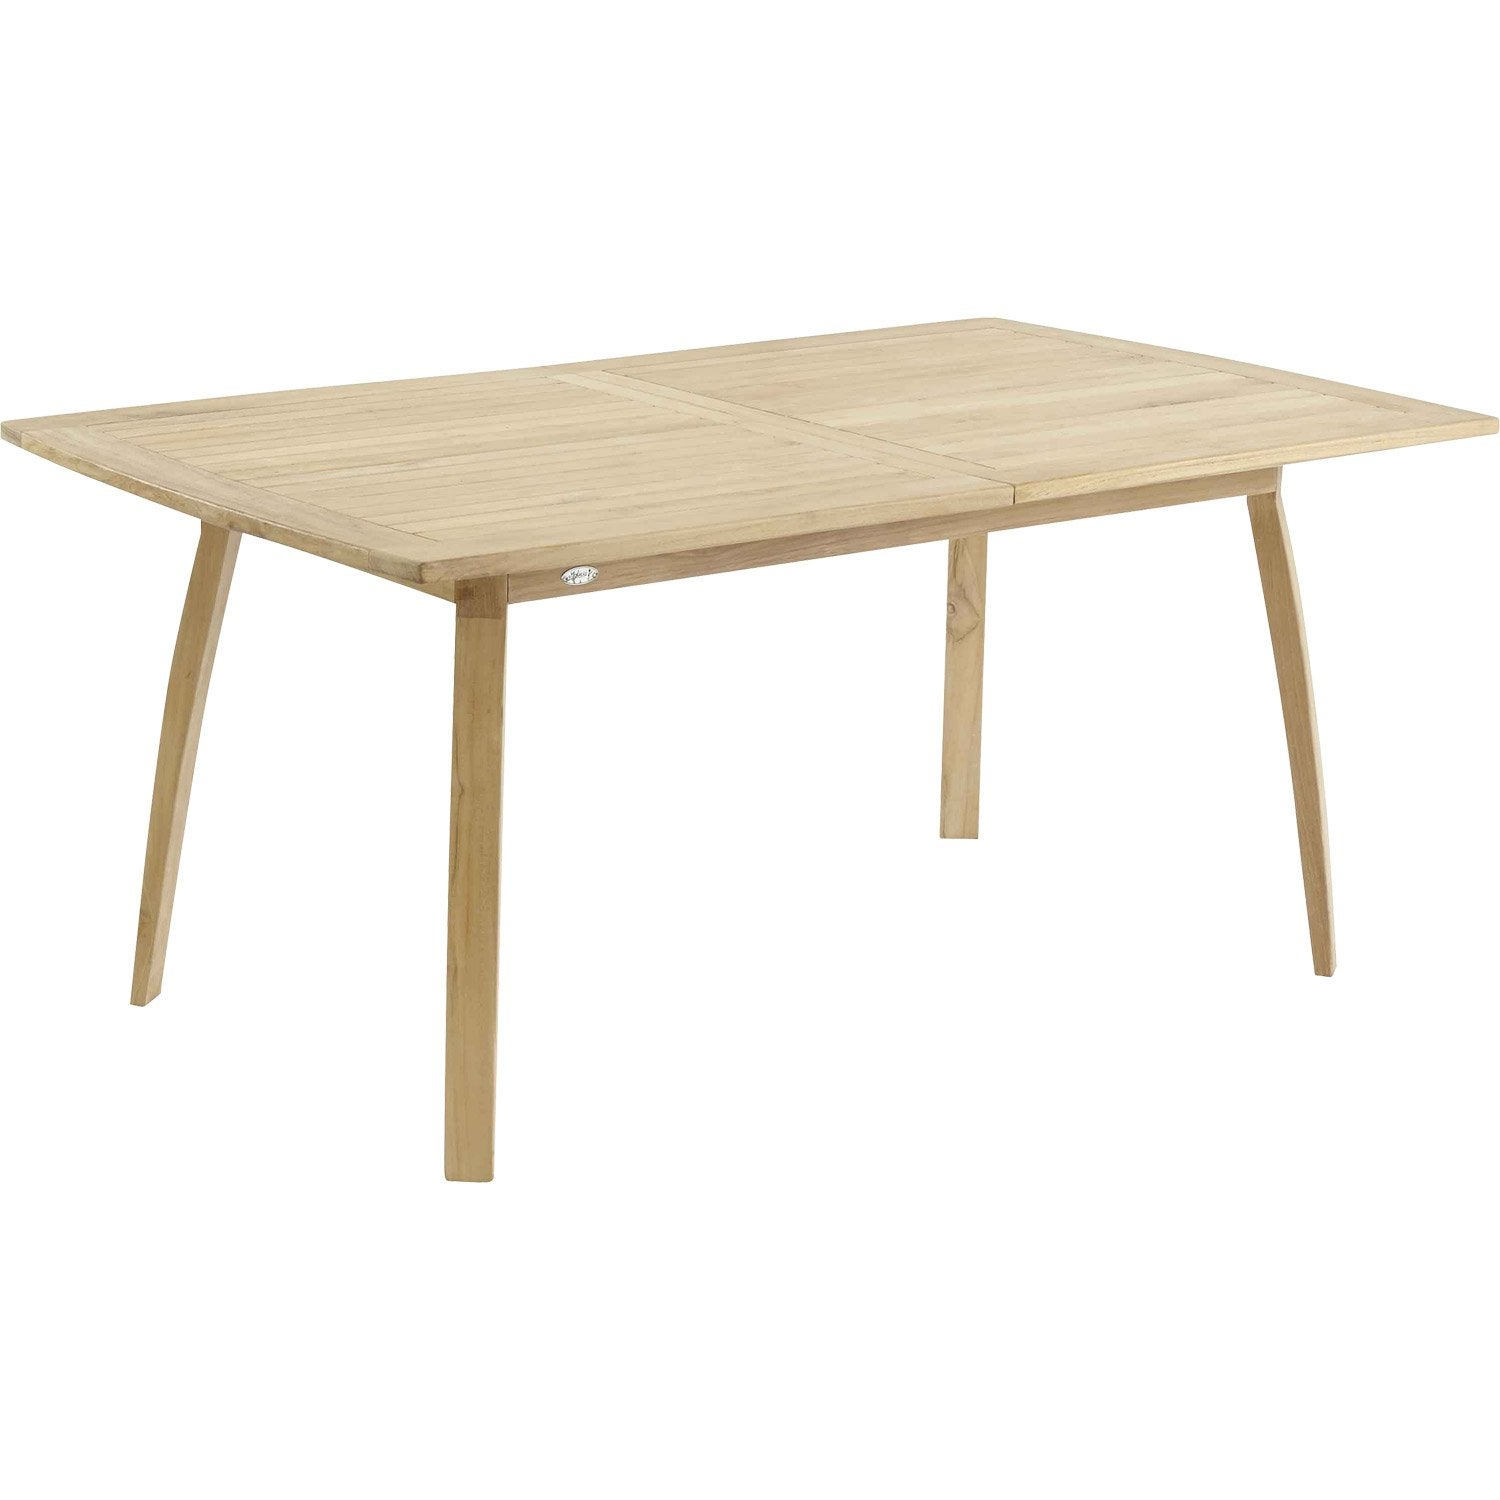 Table basse ovale leroy merlin Table de jardin en bois ovale